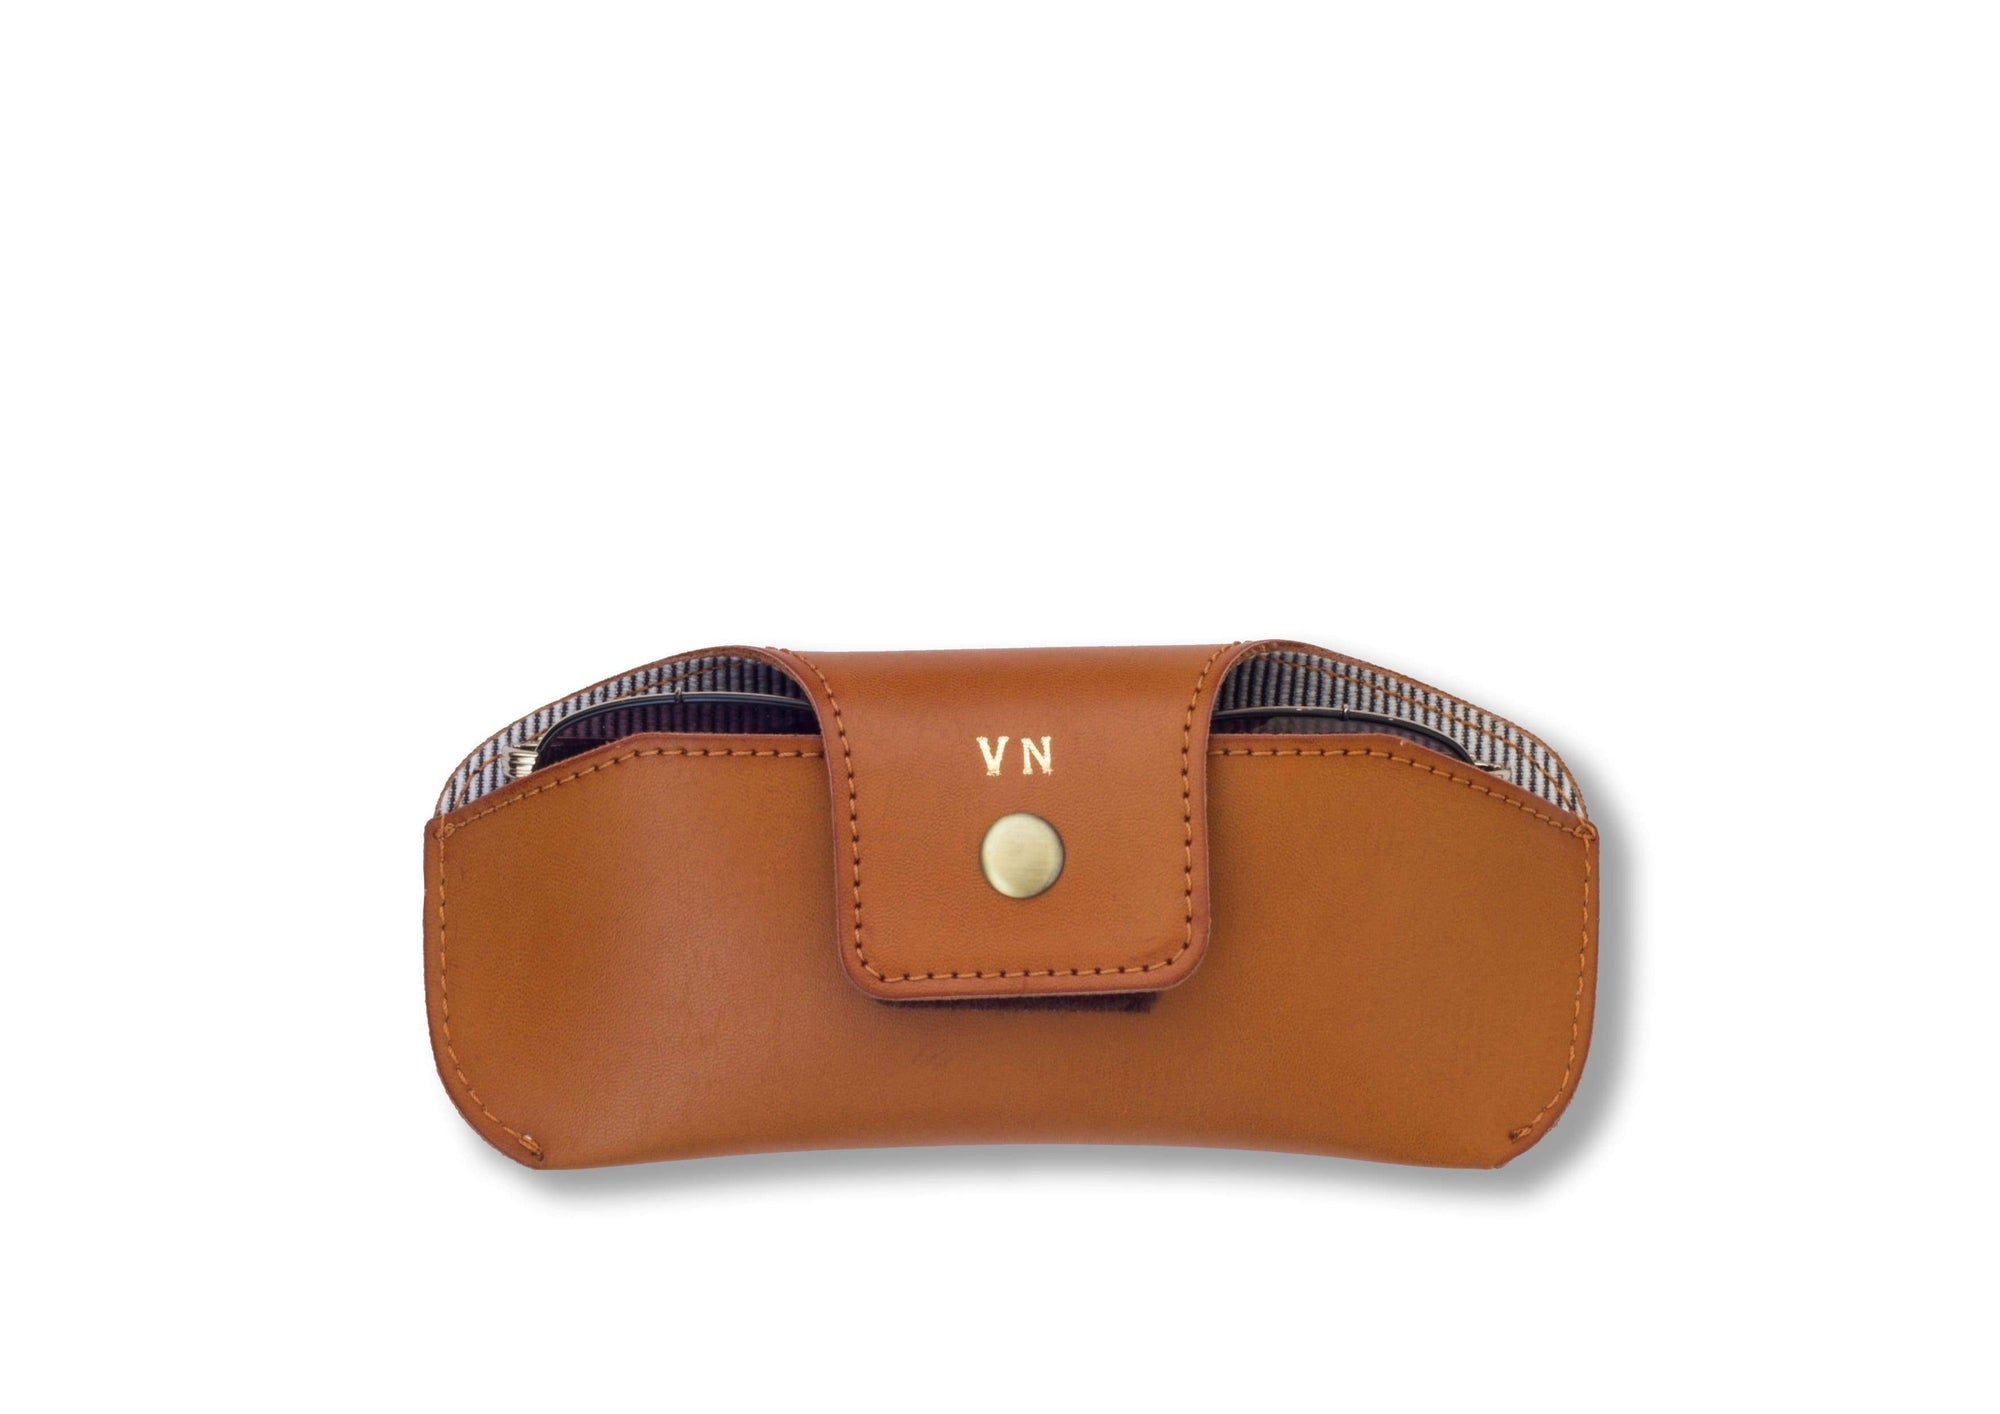 Personalised Eyewear Case - Tan Eyewear Case